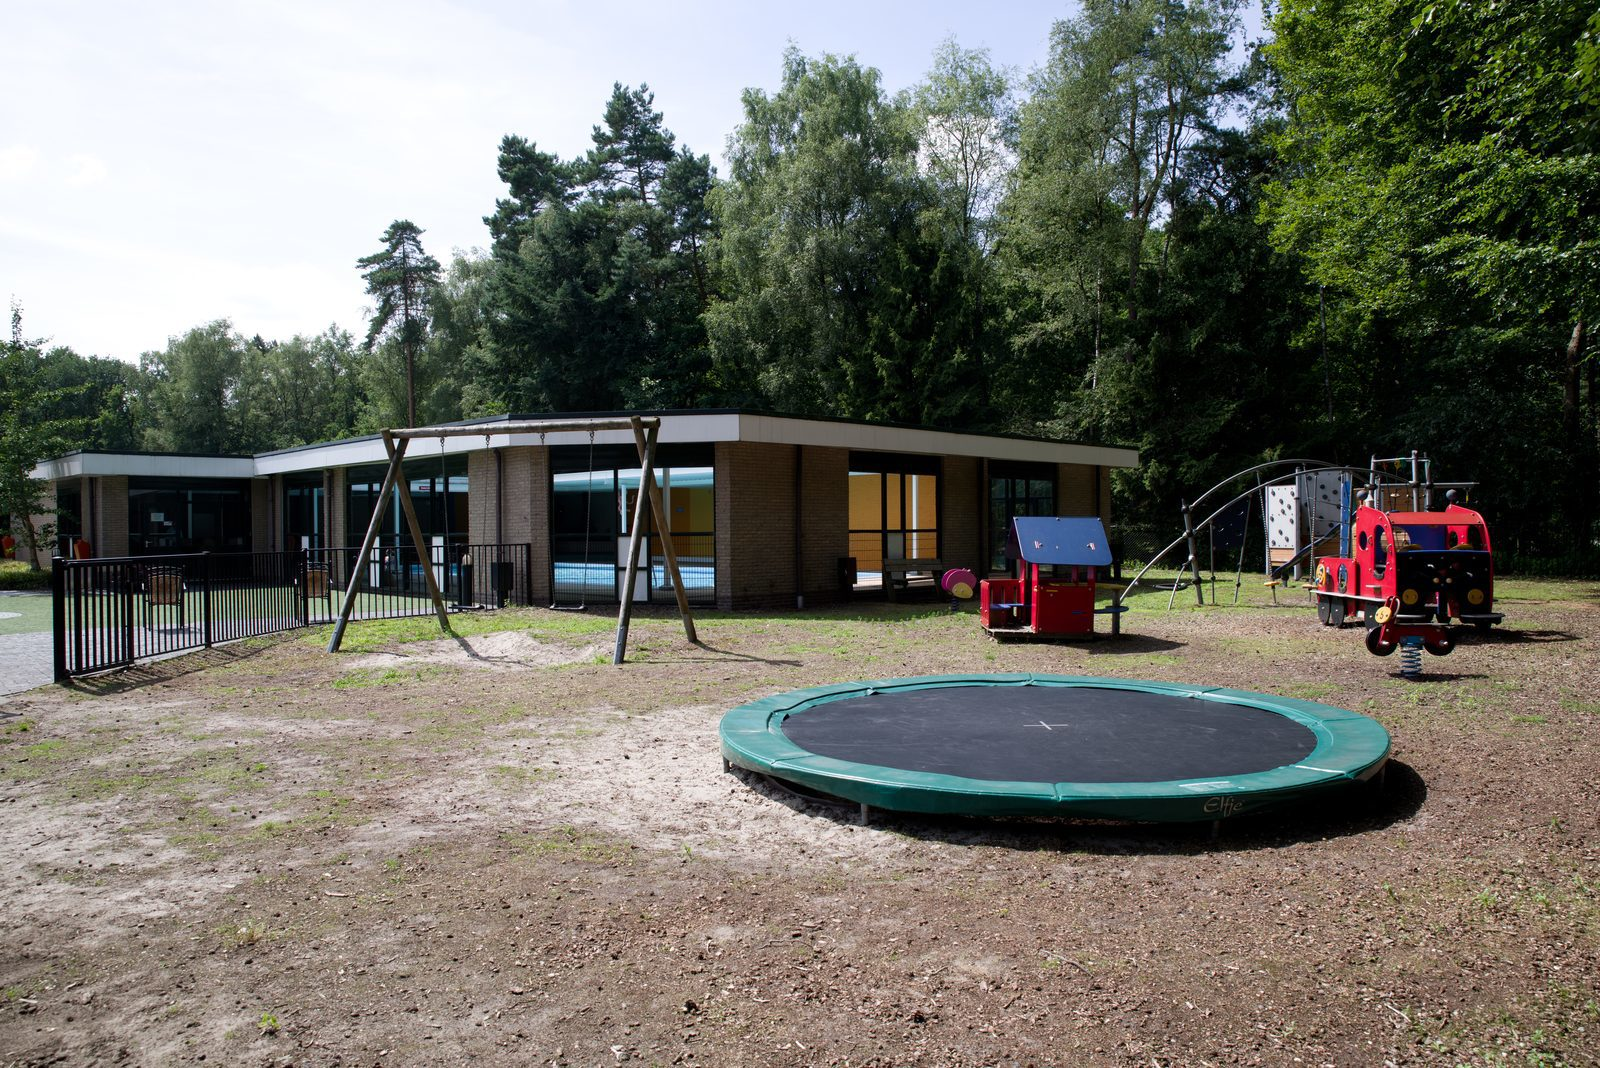 Various playgrounds